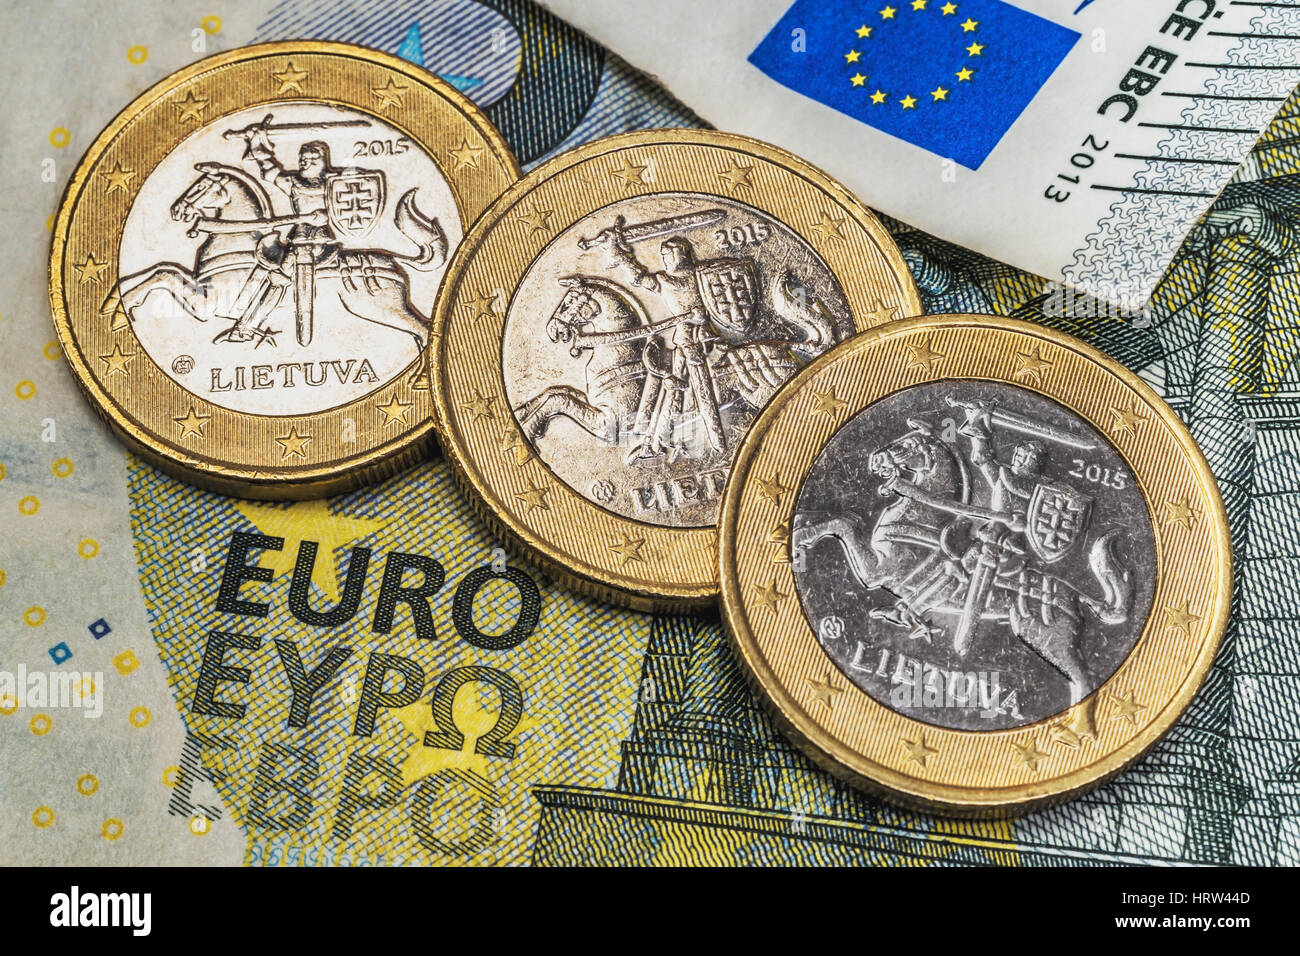 On a 5 euro banknote are three 1 euro coins of the Baltic State Lithuania - Stock Image